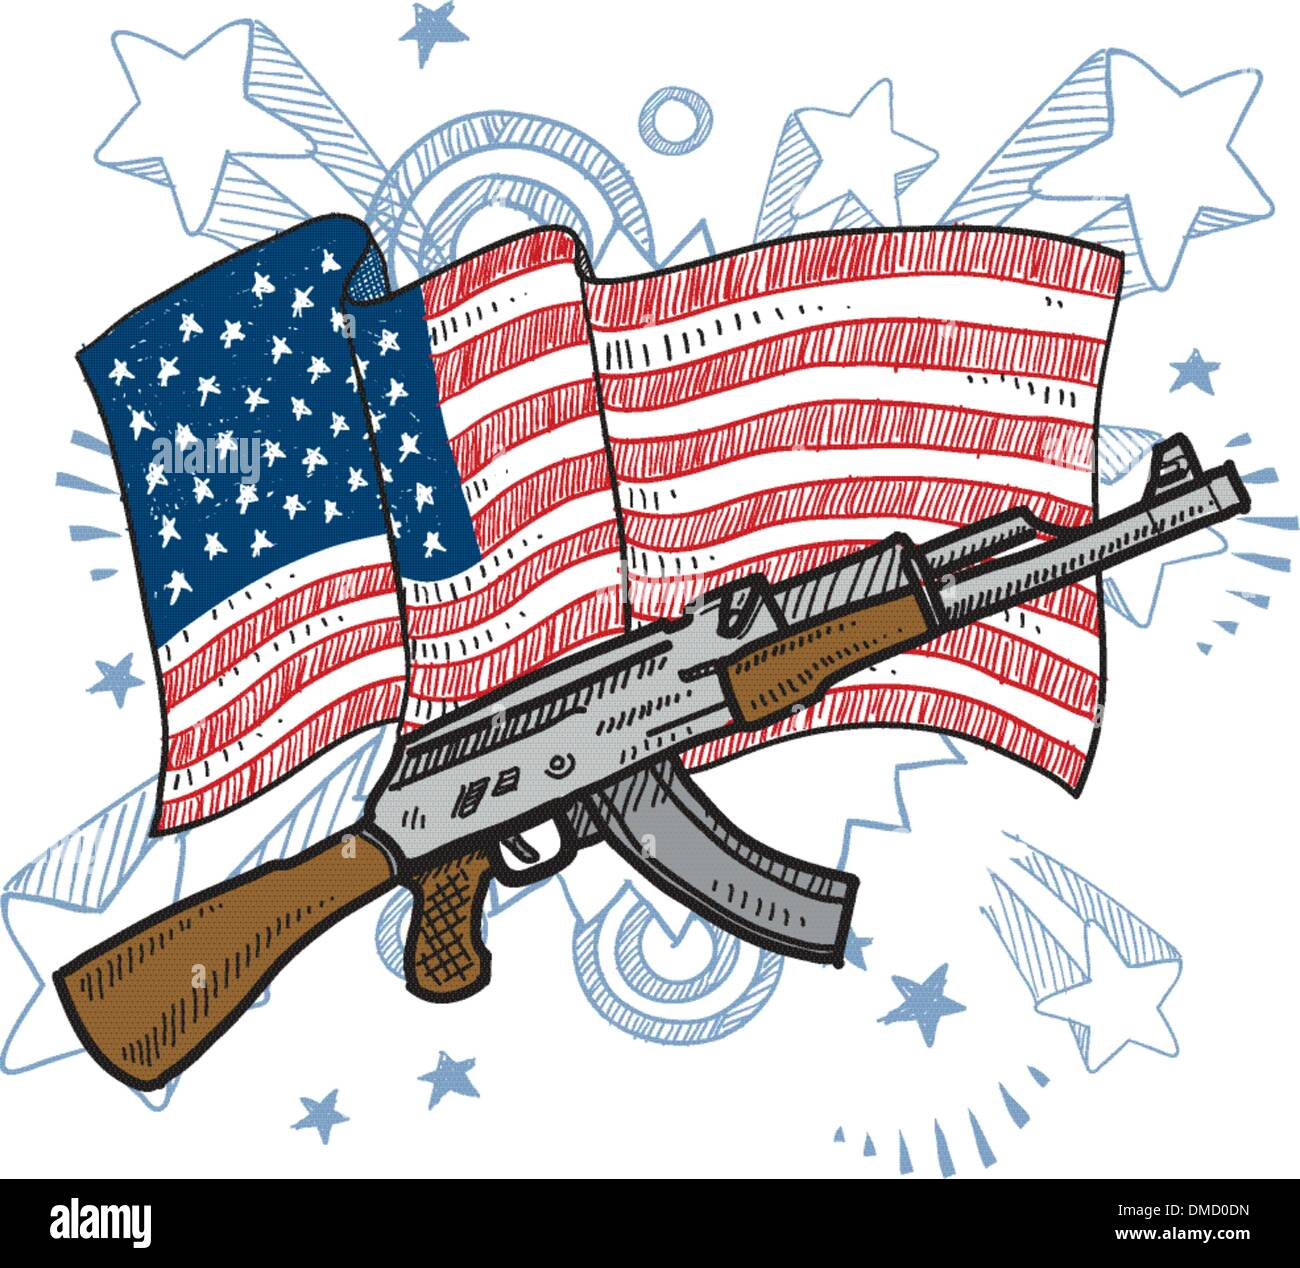 America loves assault rifles sketch - Stock Image